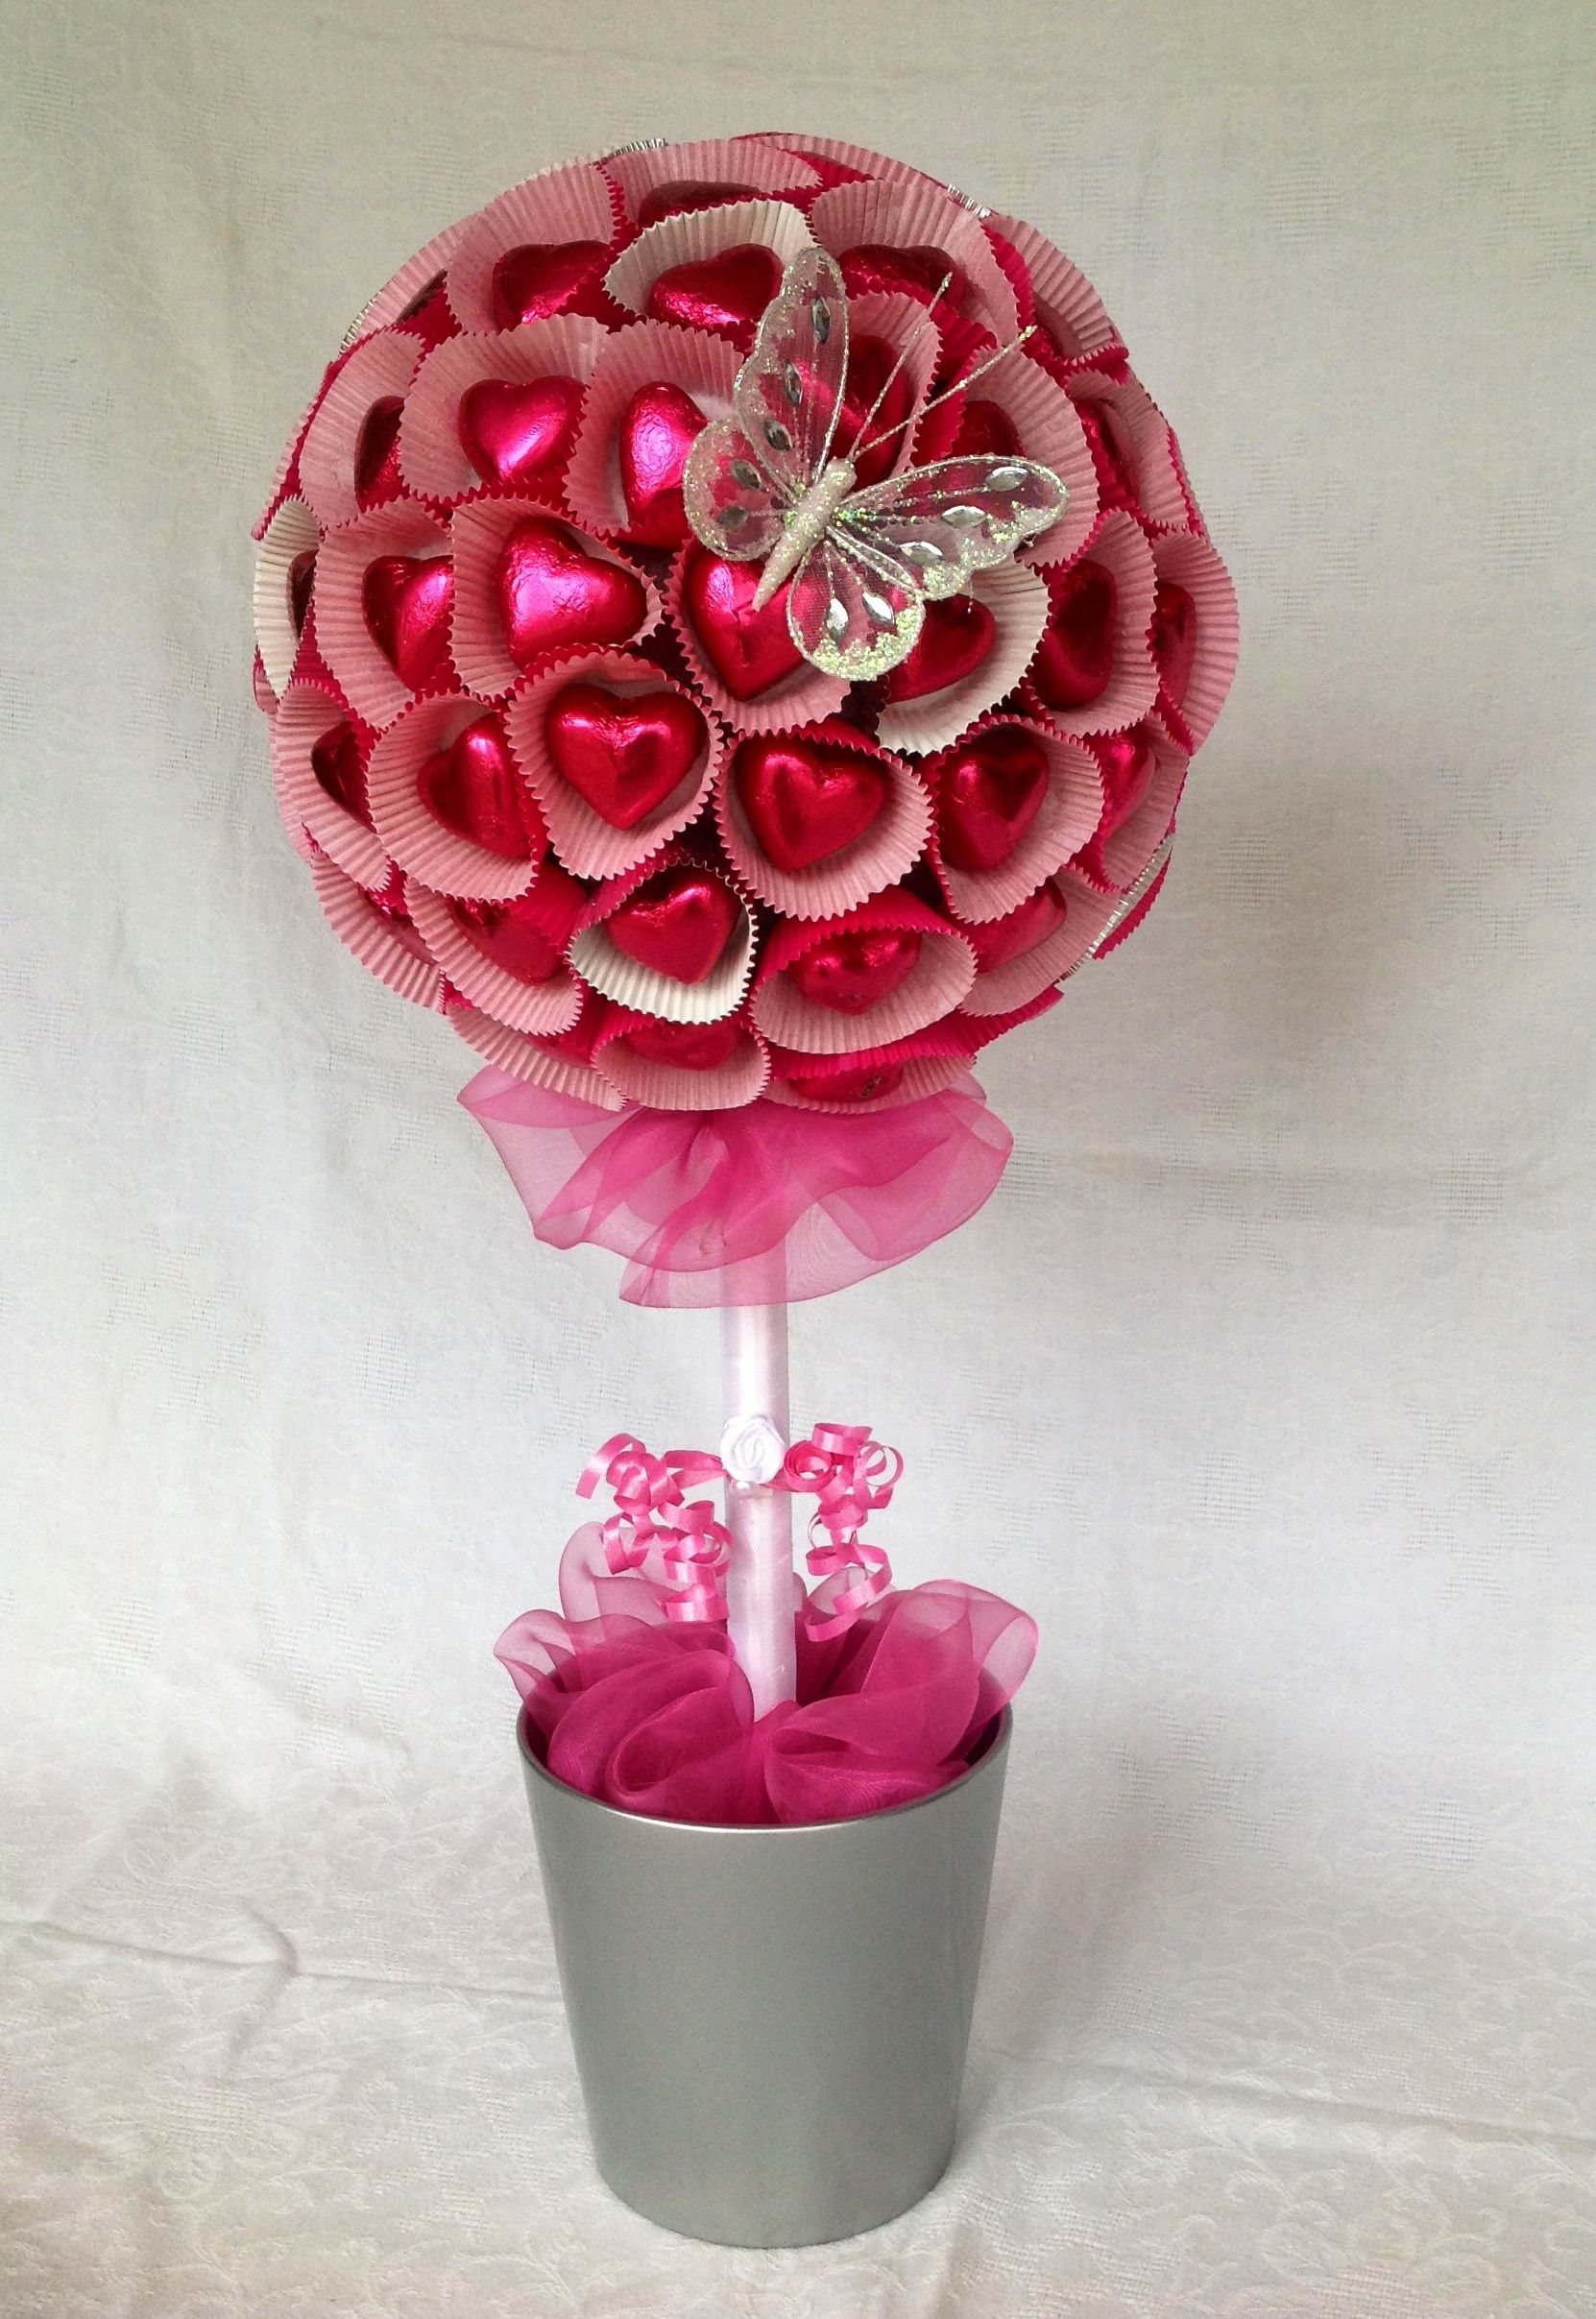 Chocolate bouquet on pinterest candy flowers bouquet of chocolate - Find This Pin And More On Chocolate Bouquet